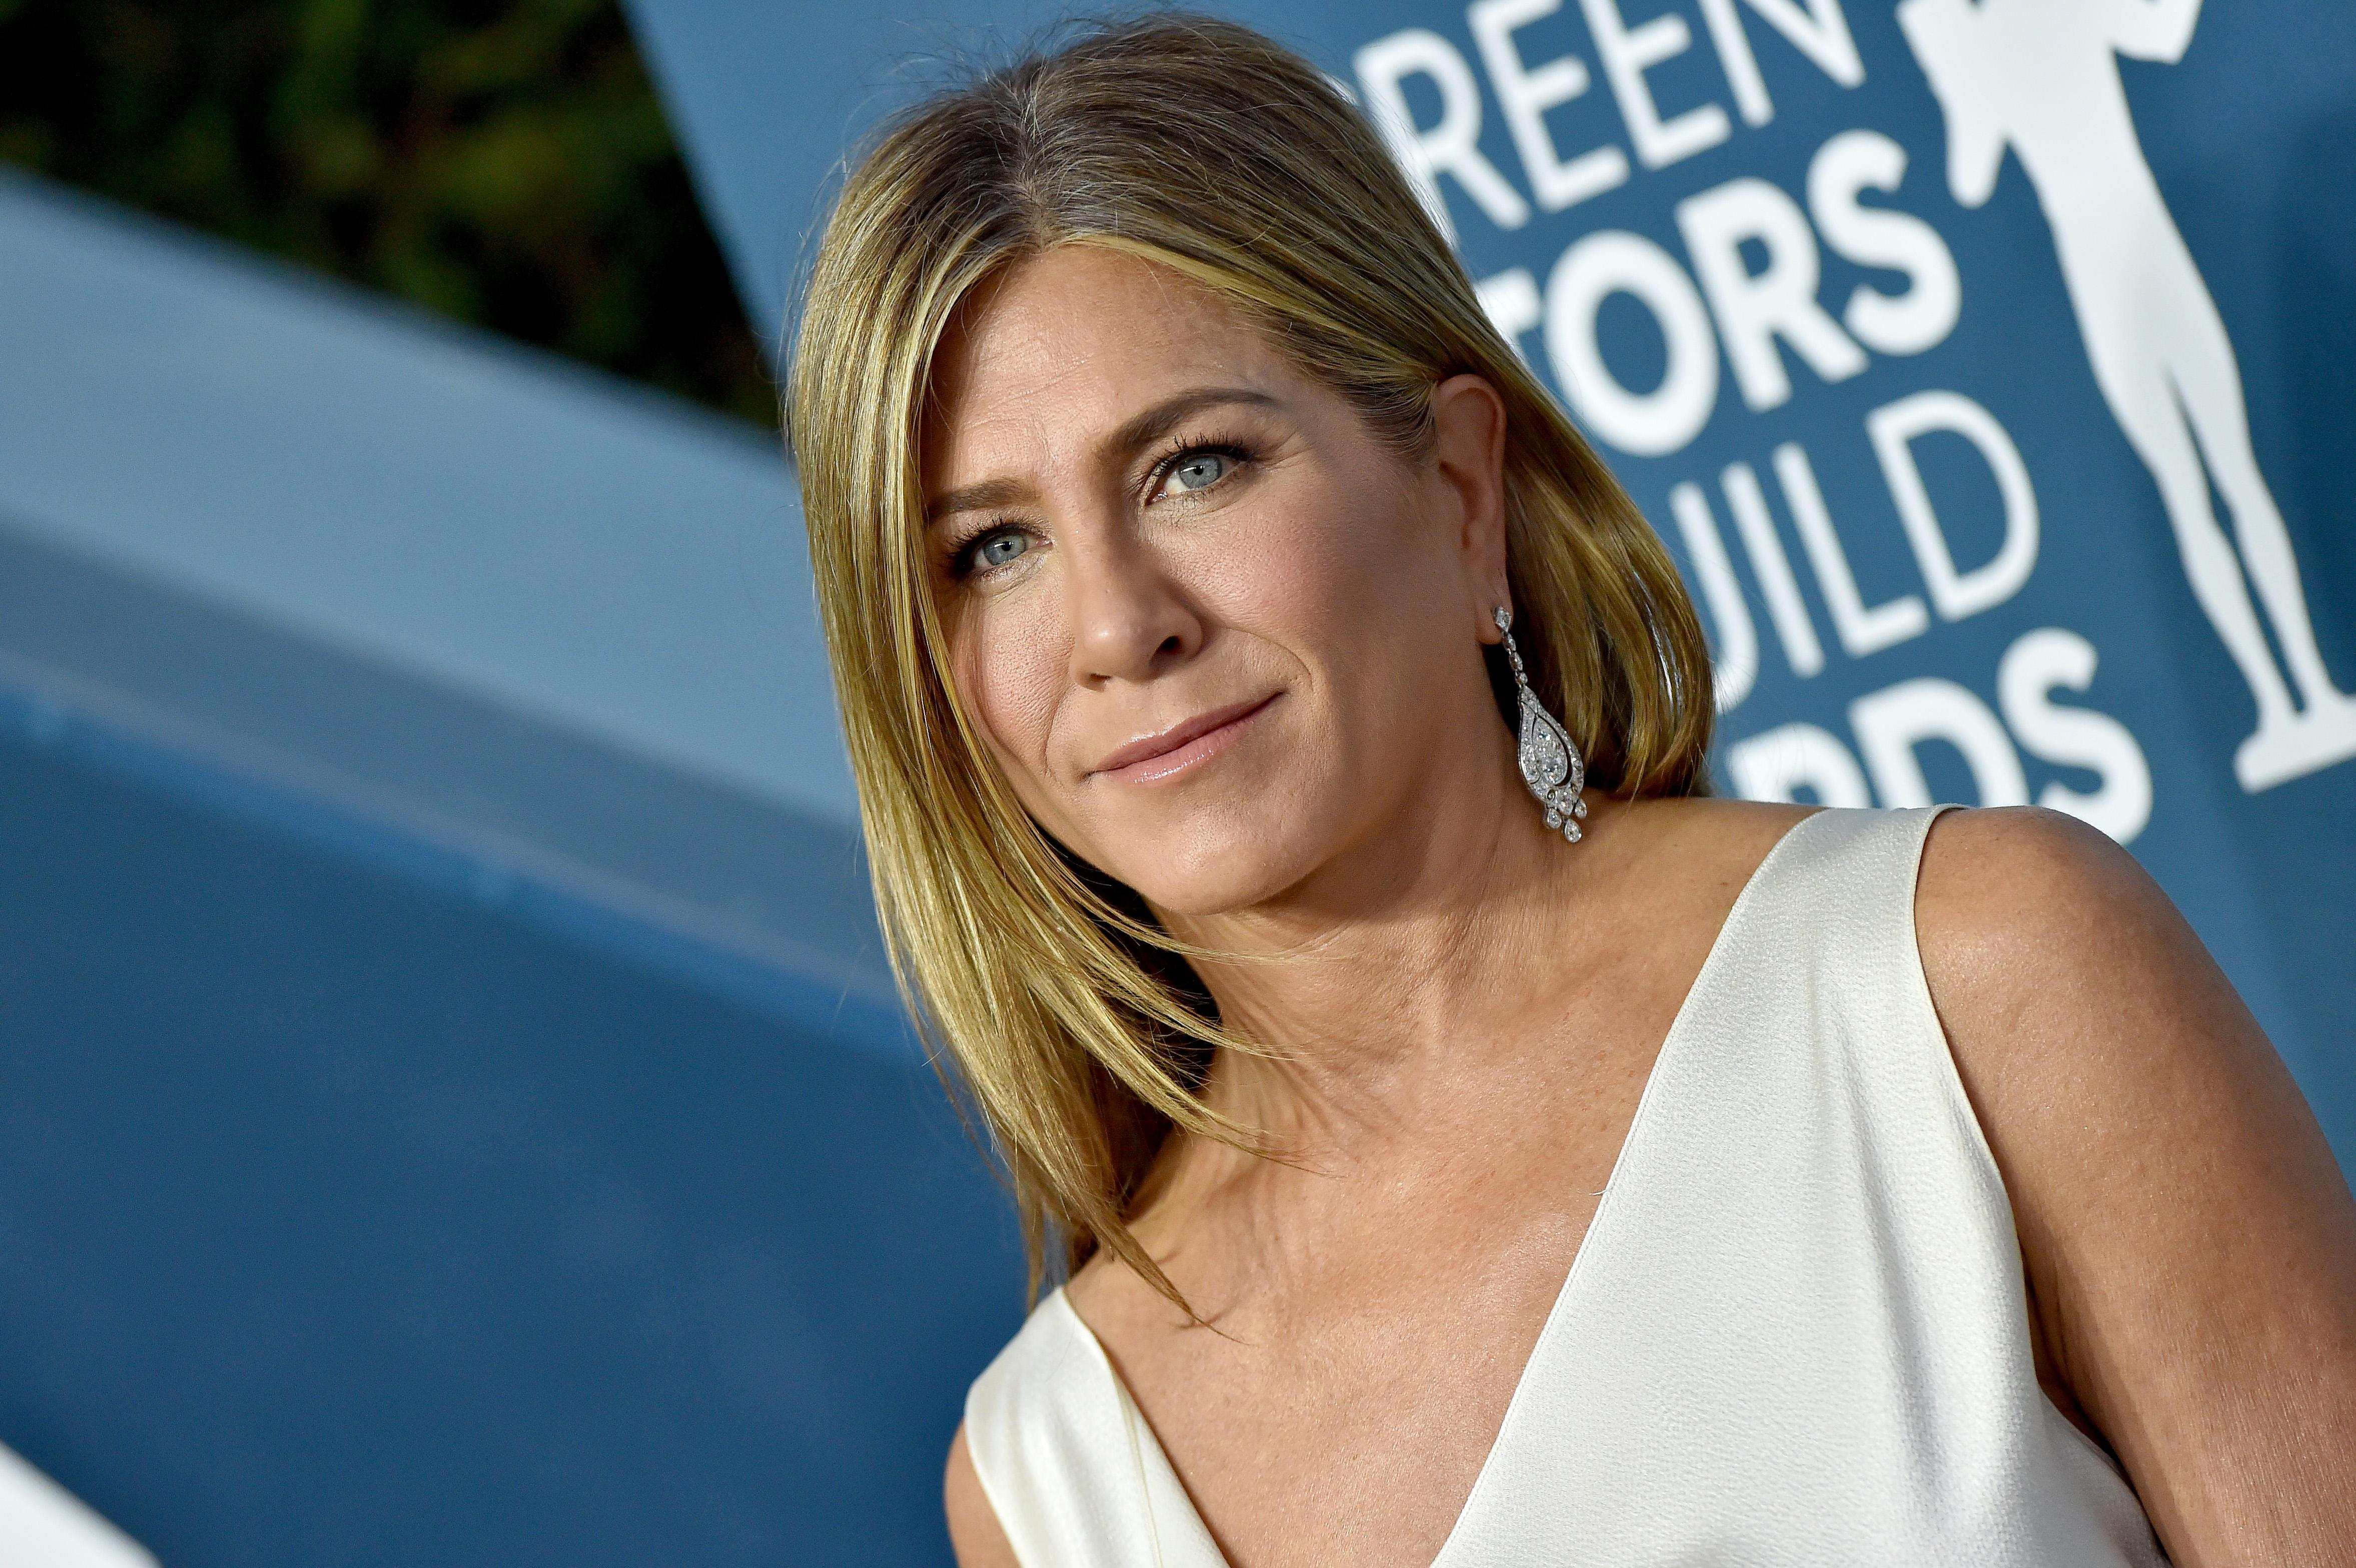 Jennifer Aniston introduces her new rescue dog: 'He stole my heart immediately'